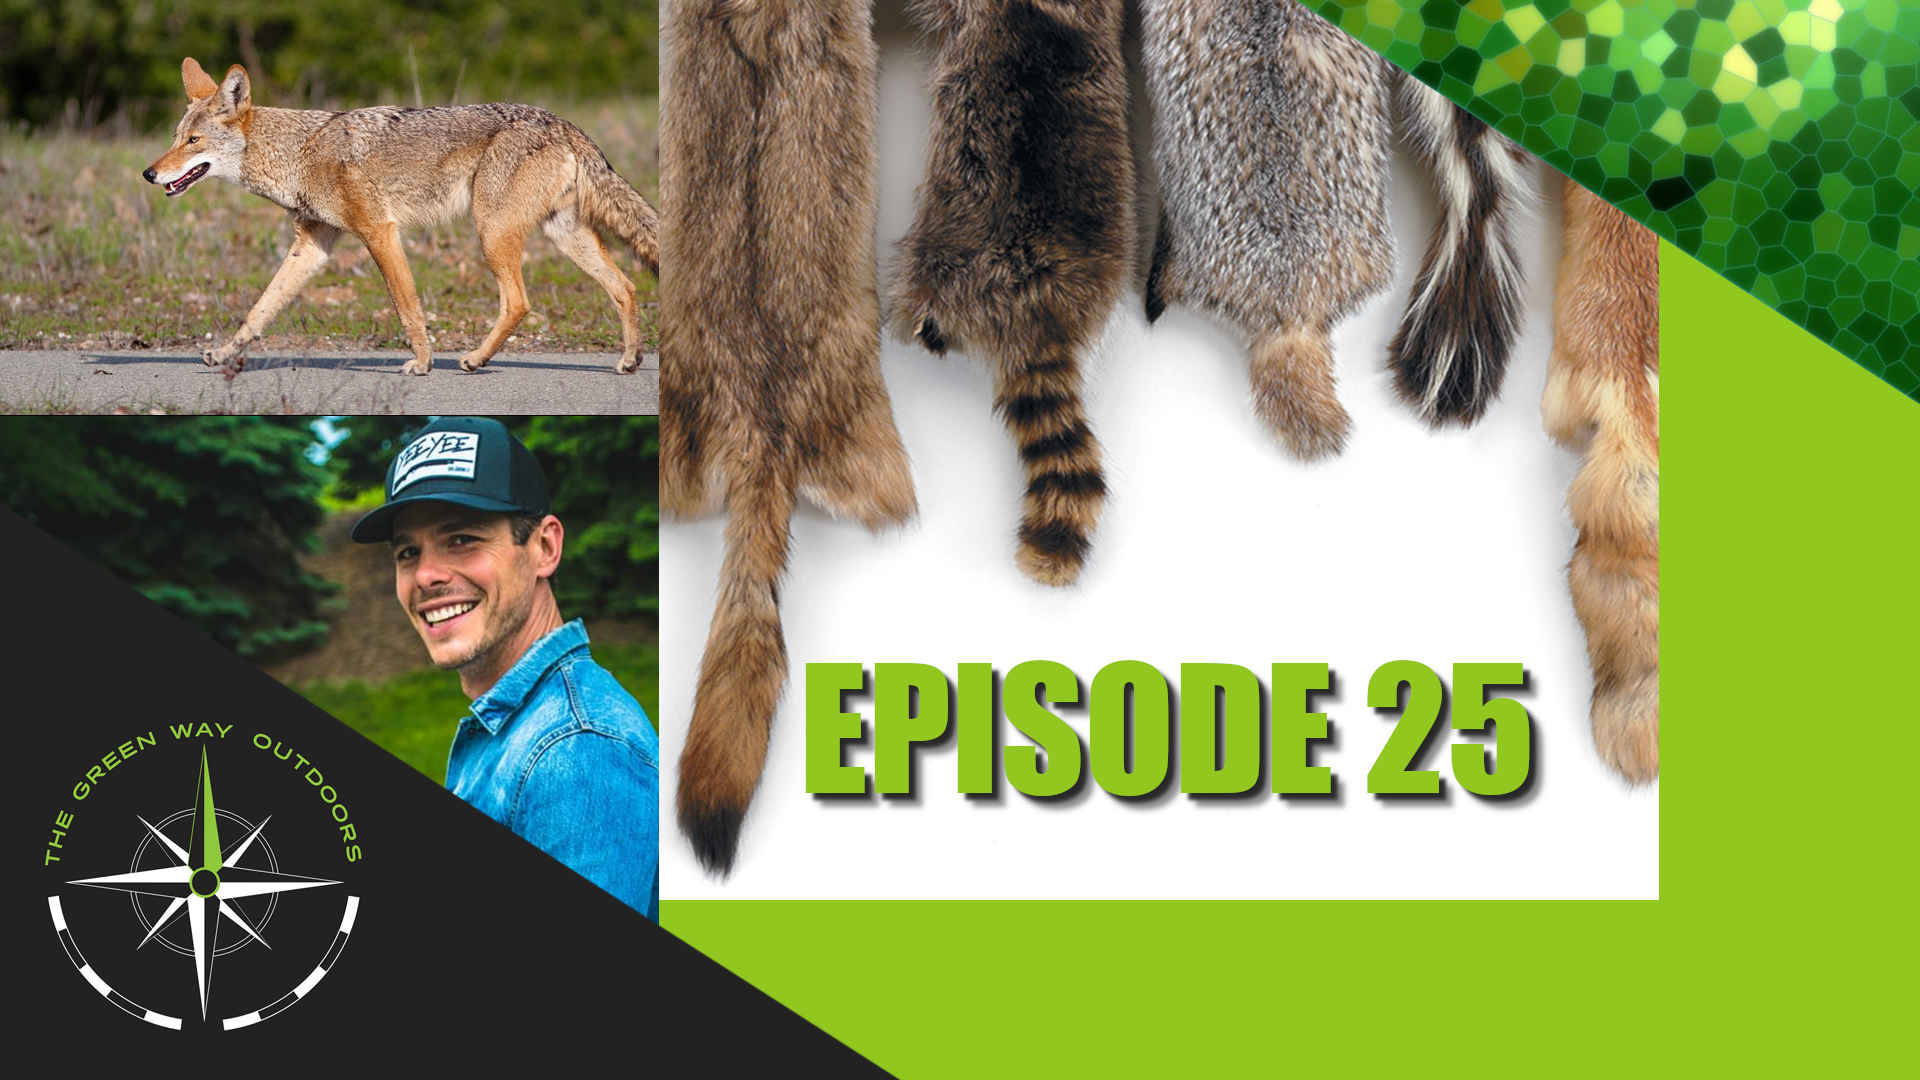 The Green Way Outdoors - Episode 25